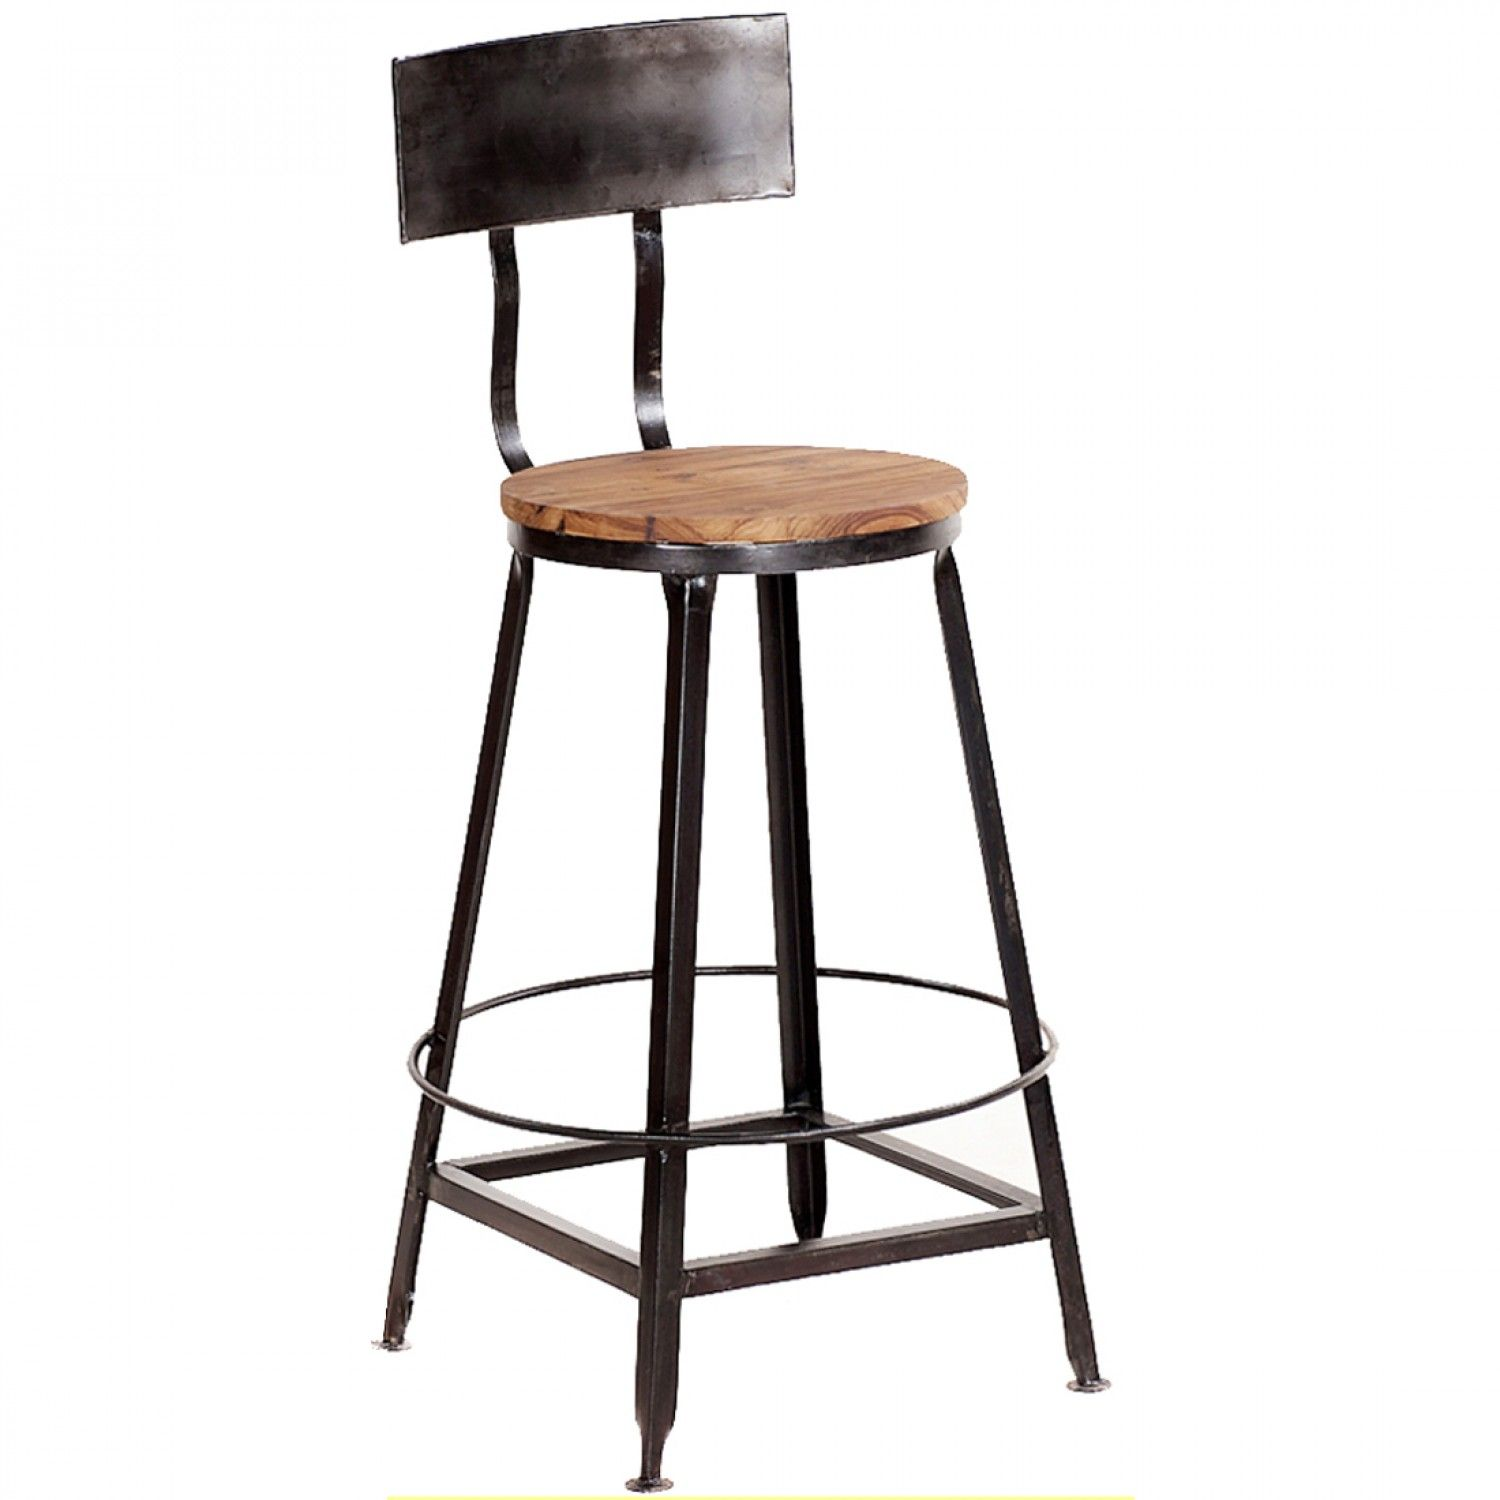 Depiction of Vintage Metal Bar Stools That Will Inspire You in Getting a Typical Kitchen Bar  sc 1 st  Pinterest : vintage metal stool - islam-shia.org